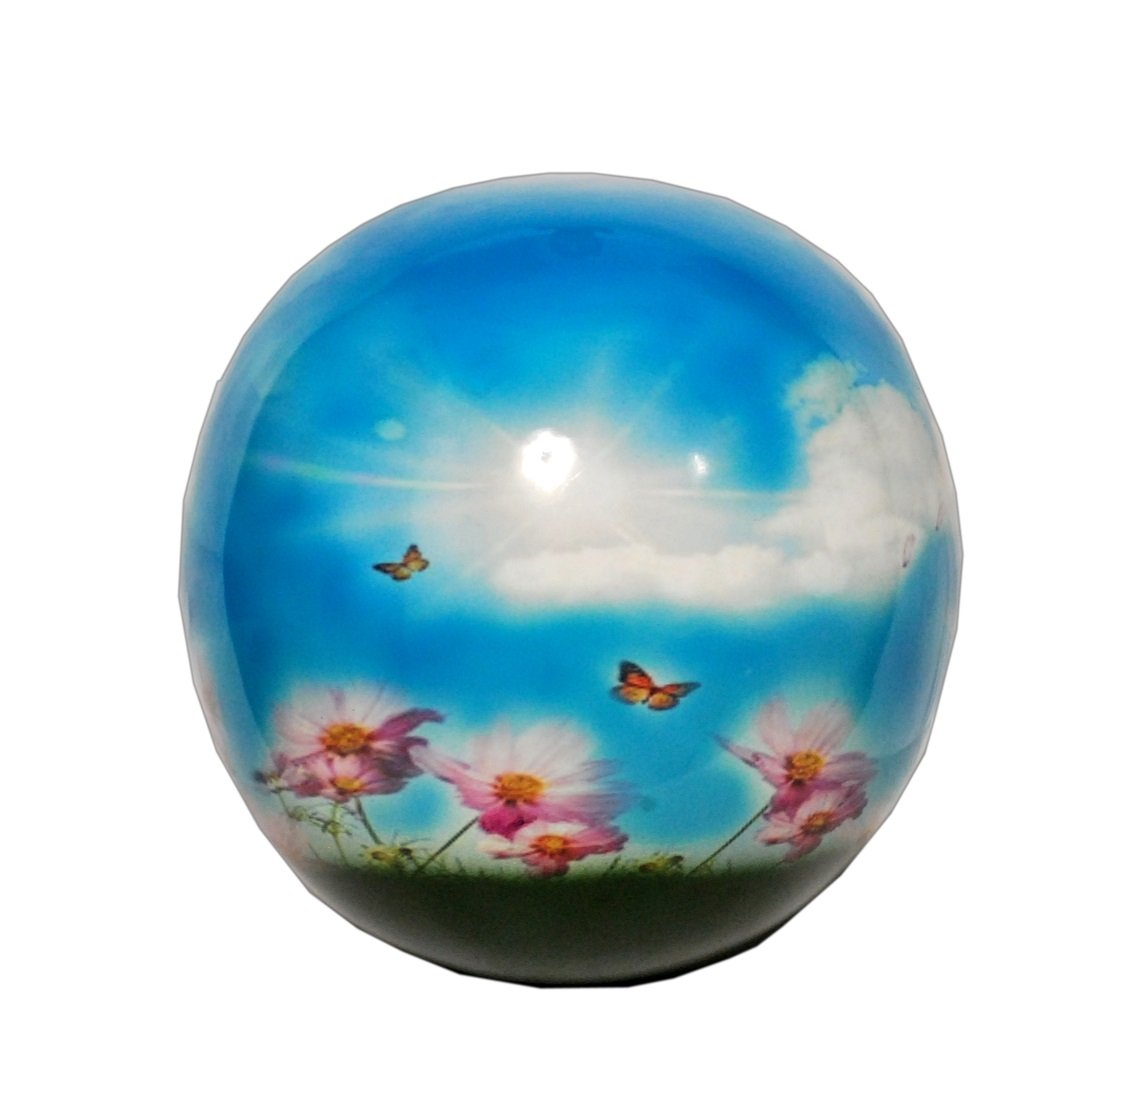 Divinityurns Heavenly Butterfly Sphere of Life Cremation Urn for Human Ashes by Memorials4u - Adult Funeral Urn Handcrafted and Engraved - Affordable Urn for Ashes - Large Urn Deal